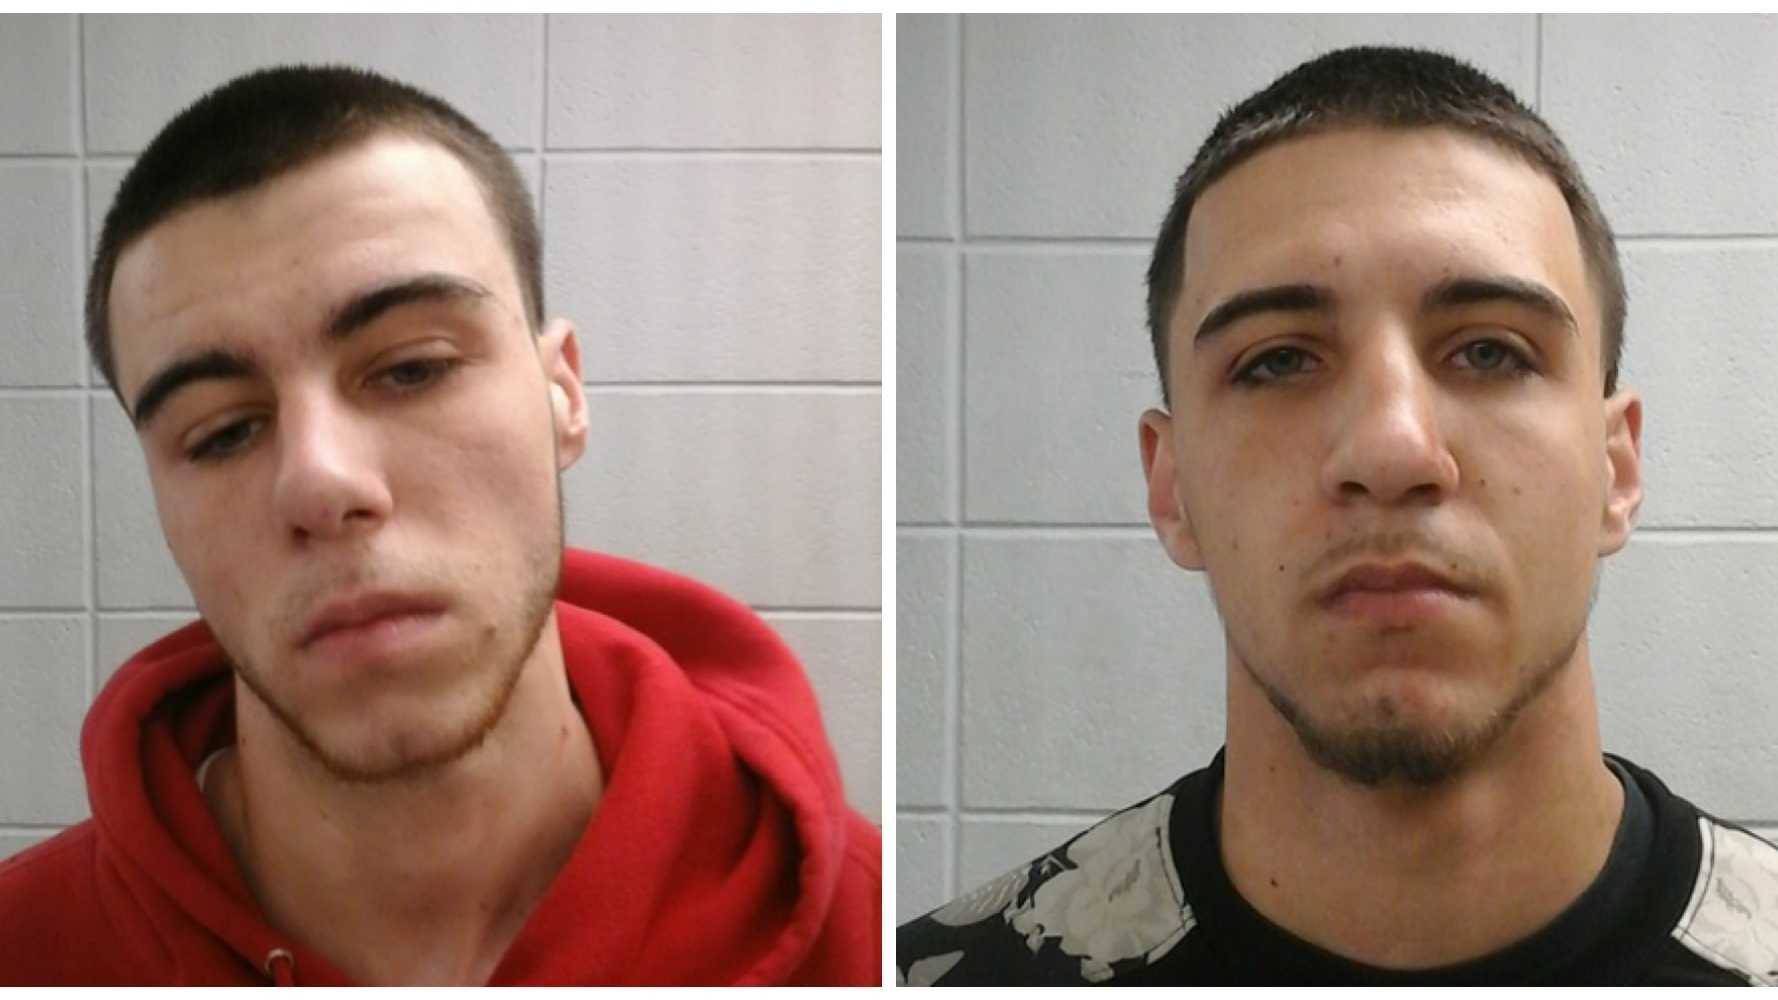 Michael Gill, 19, left and Robert Gill, 21, right